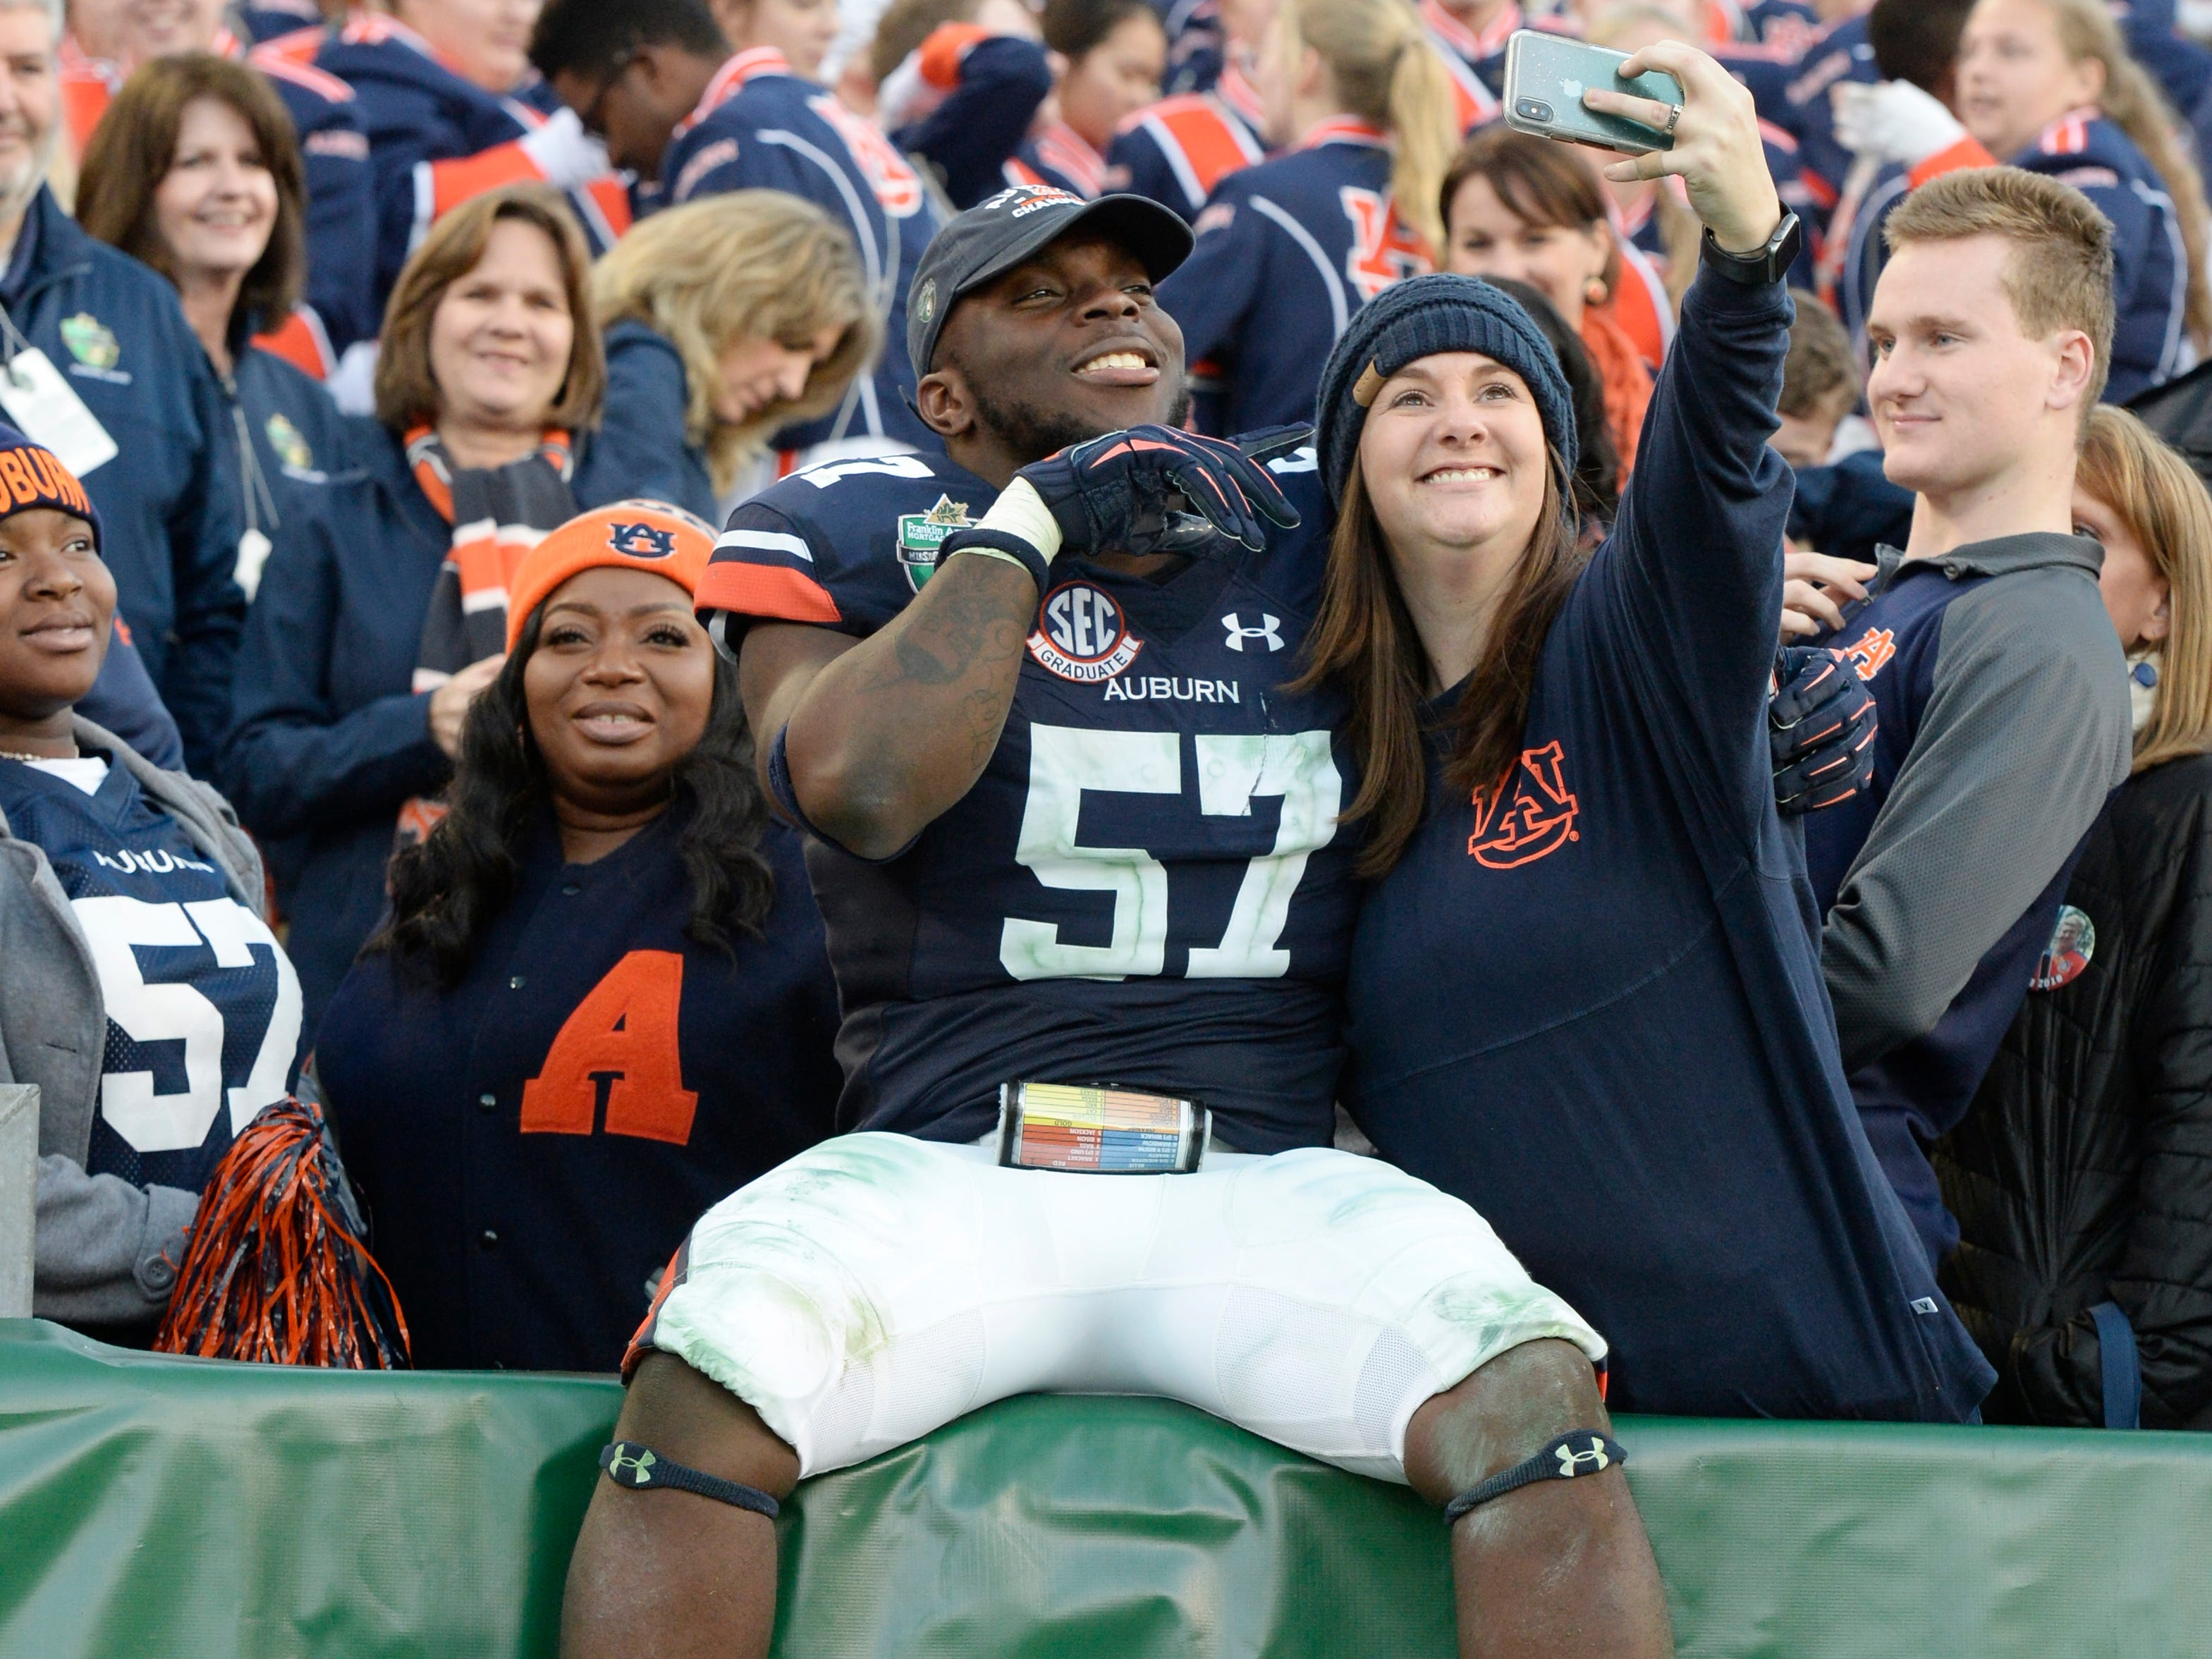 Auburn linebacker Deshaun Davis (57) celebrates in the stands after the team's win in the Music City Bowl NCAA college football game Friday, Dec. 28, 2018, at Nissan Stadium in Nashville, Tenn.